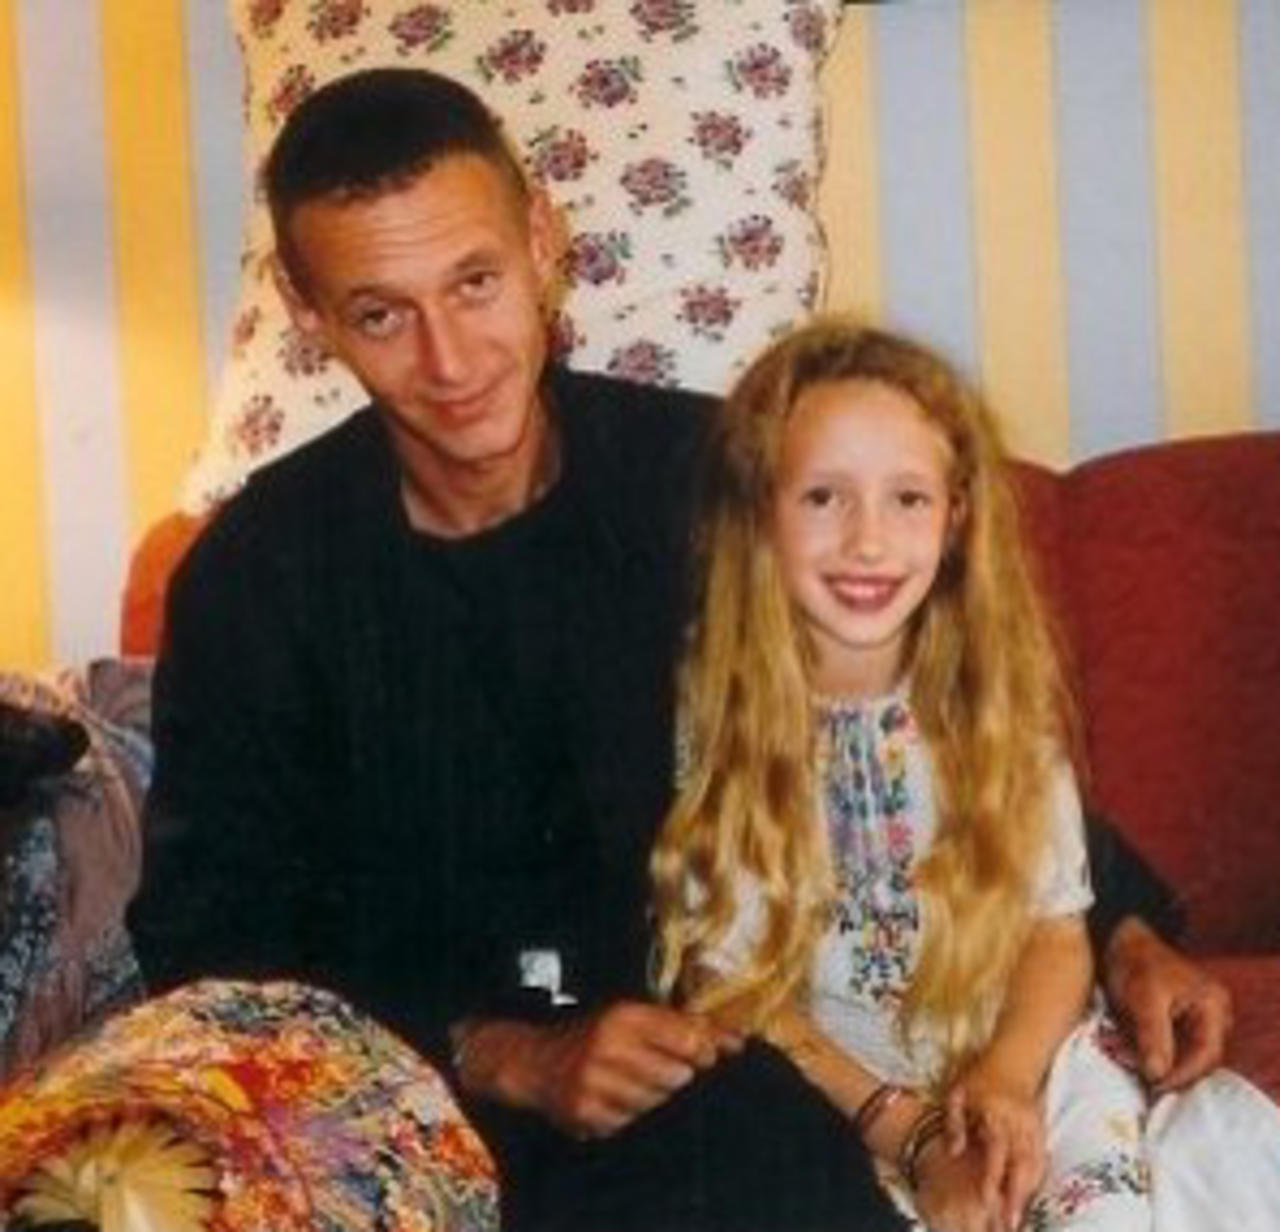 Lilly and her father in 1996.